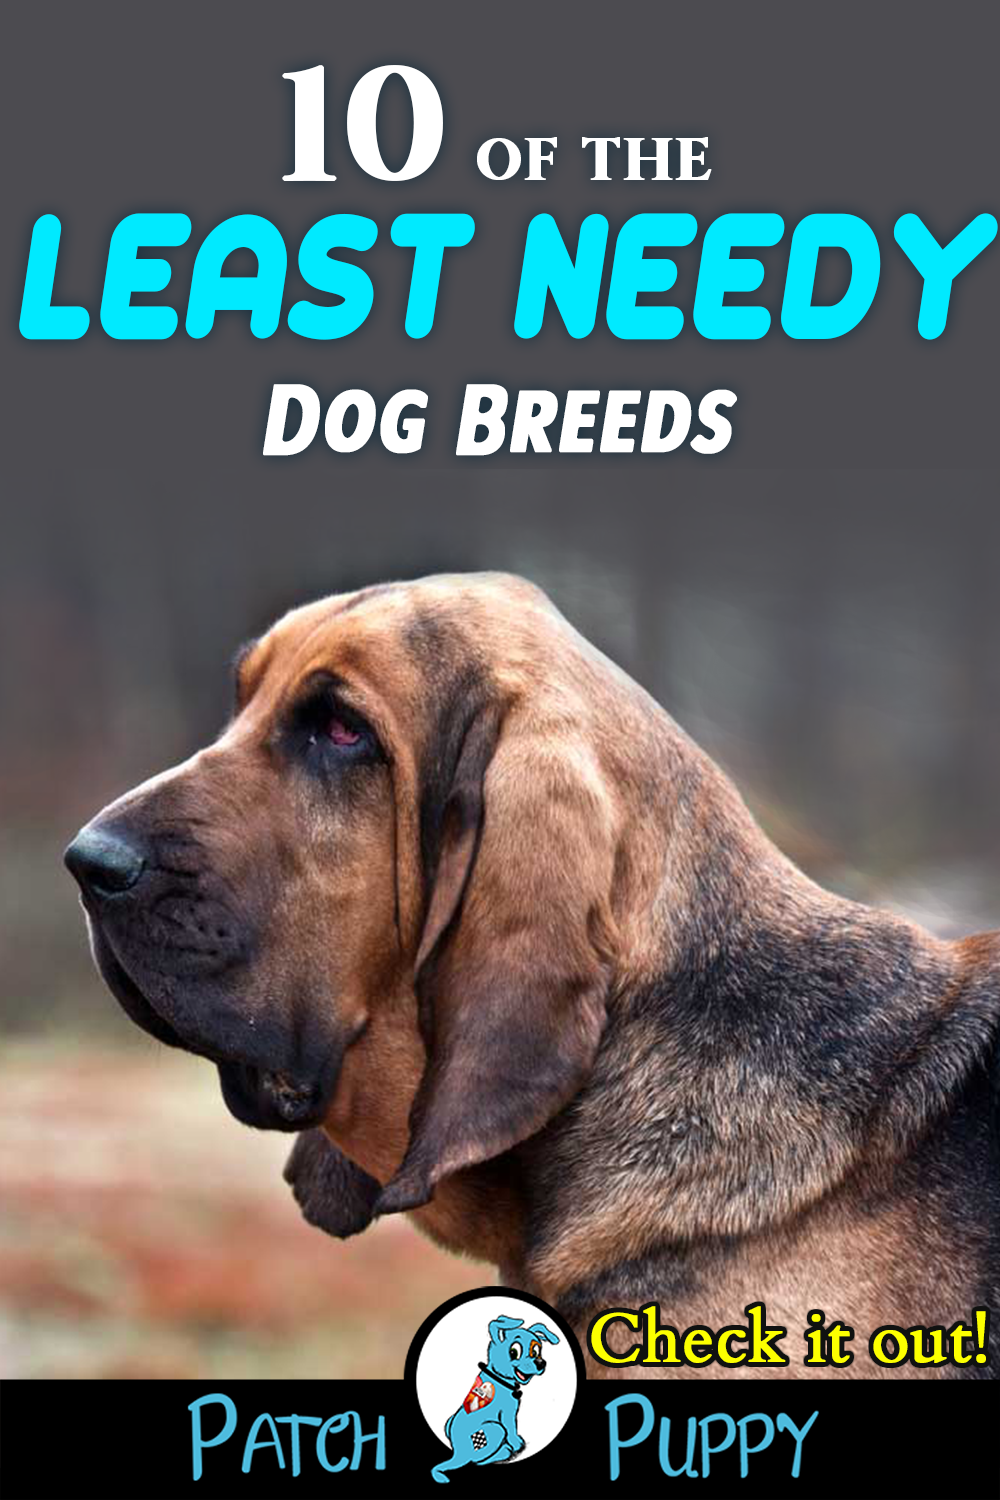 10 Of The Least Needy Dog Breeds You Ll Be Surprised Patchpuppy Com Dog Breeds Dogs Apartment Dogs